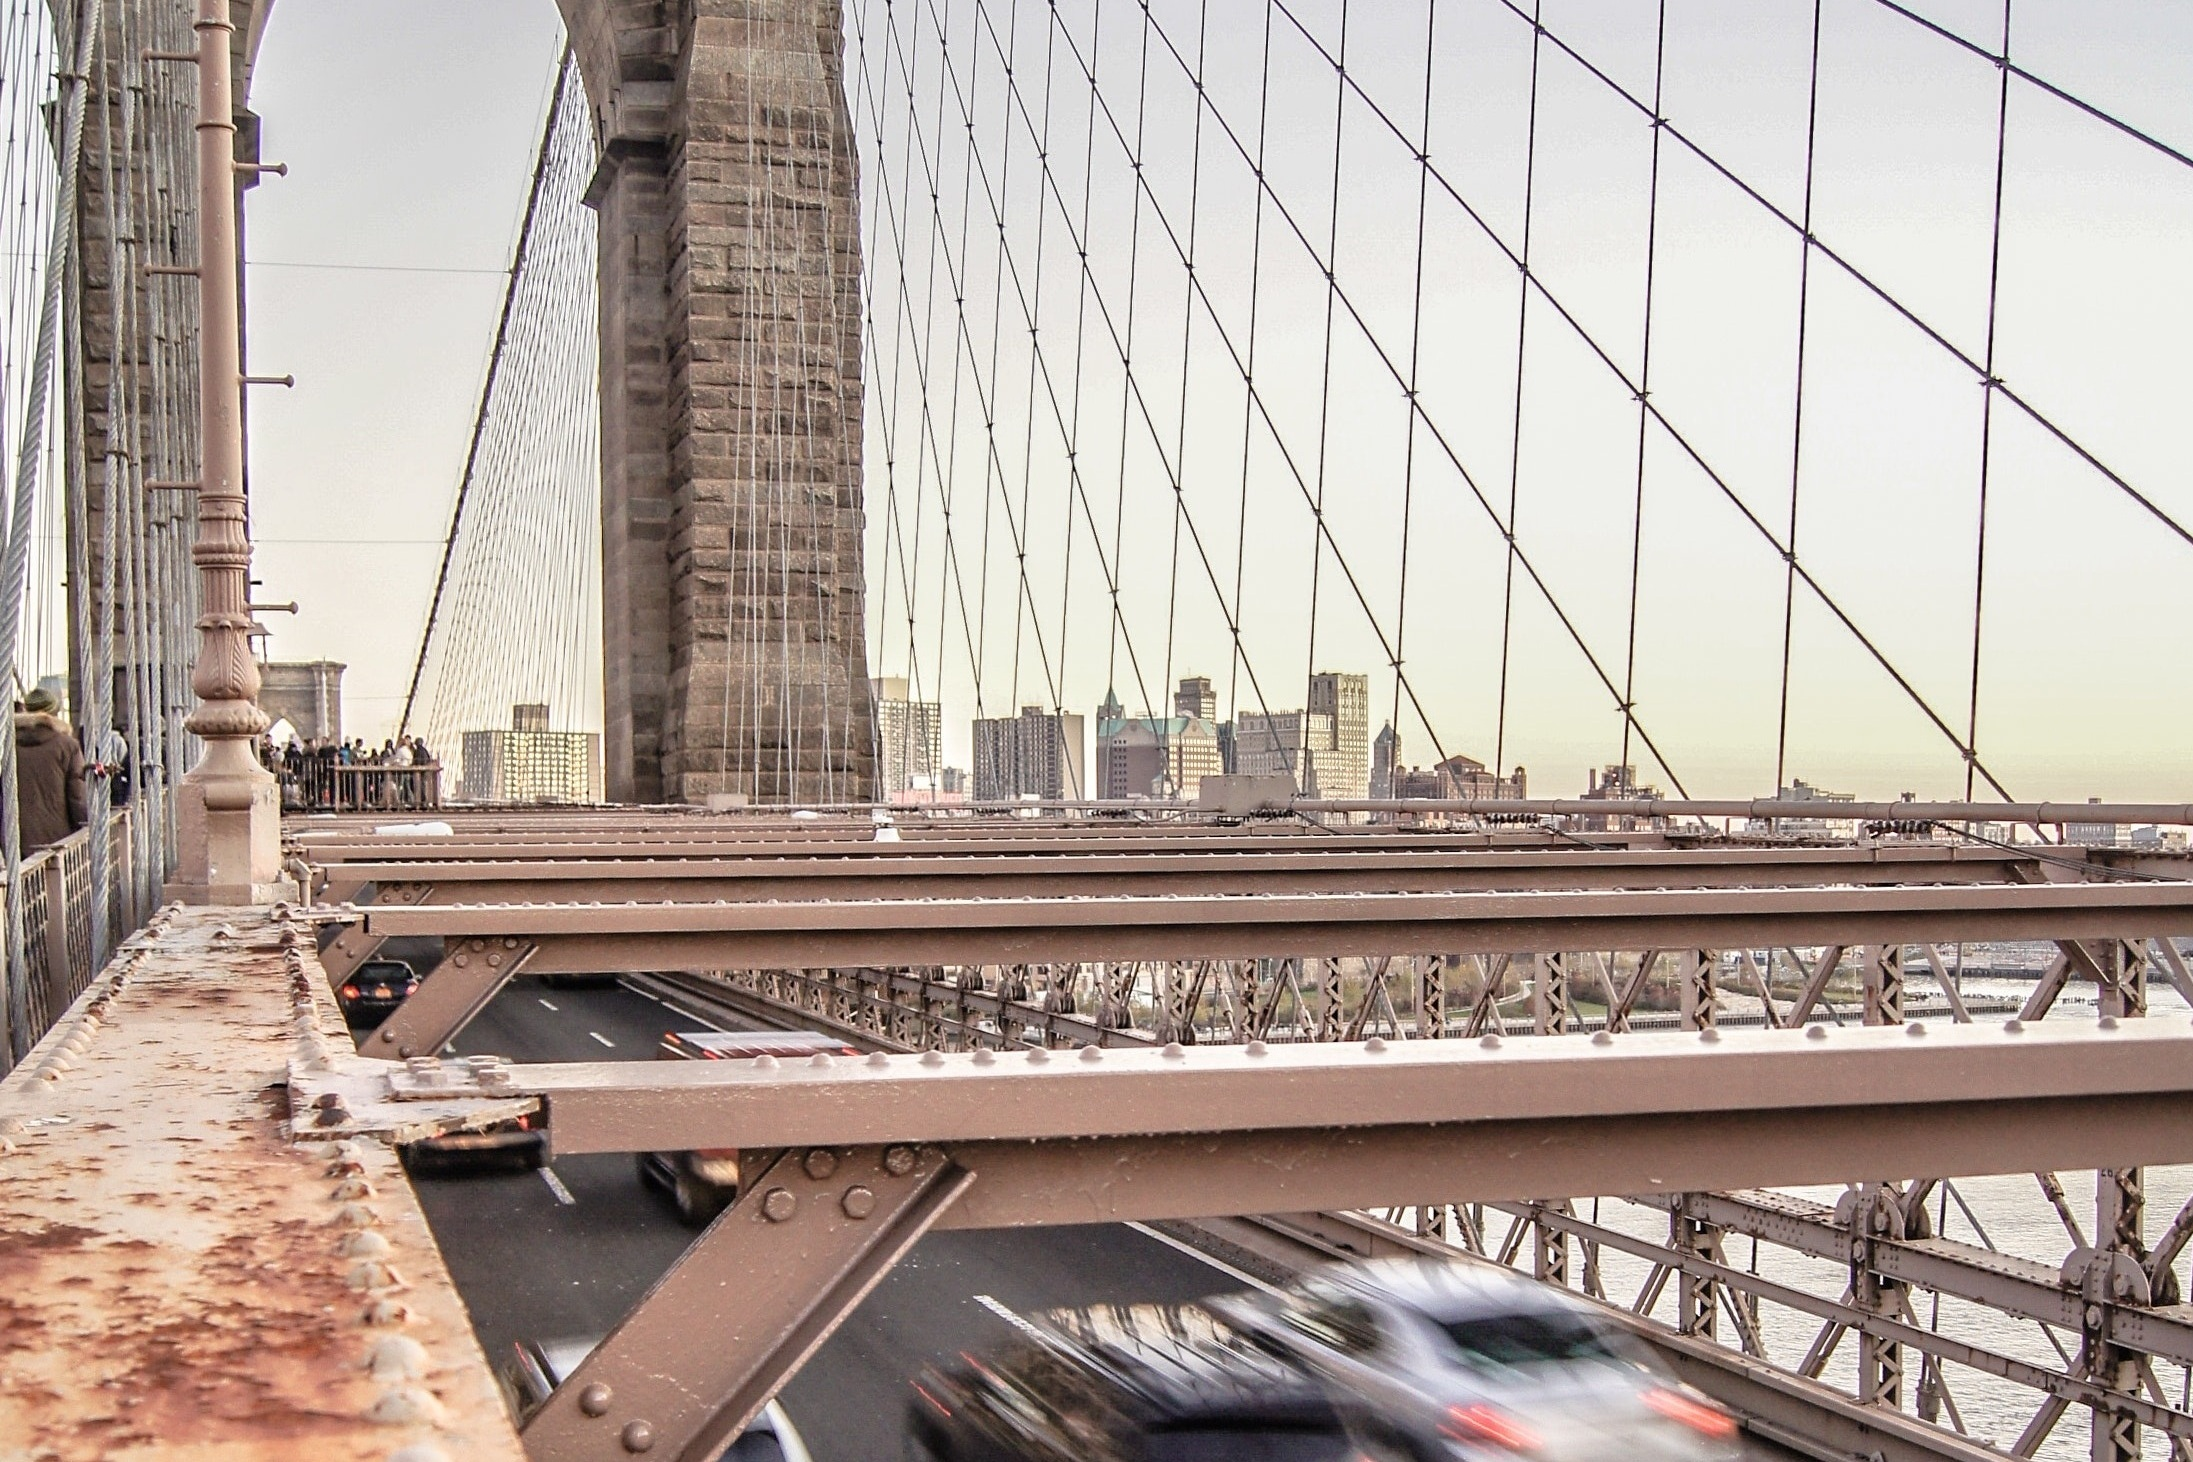 Brooklyn February 2019 - During February, Brooklyn saw mixed market indicators including rising price statistics and lower contract activity, but also level days on market and declining inventory.Read the full report →